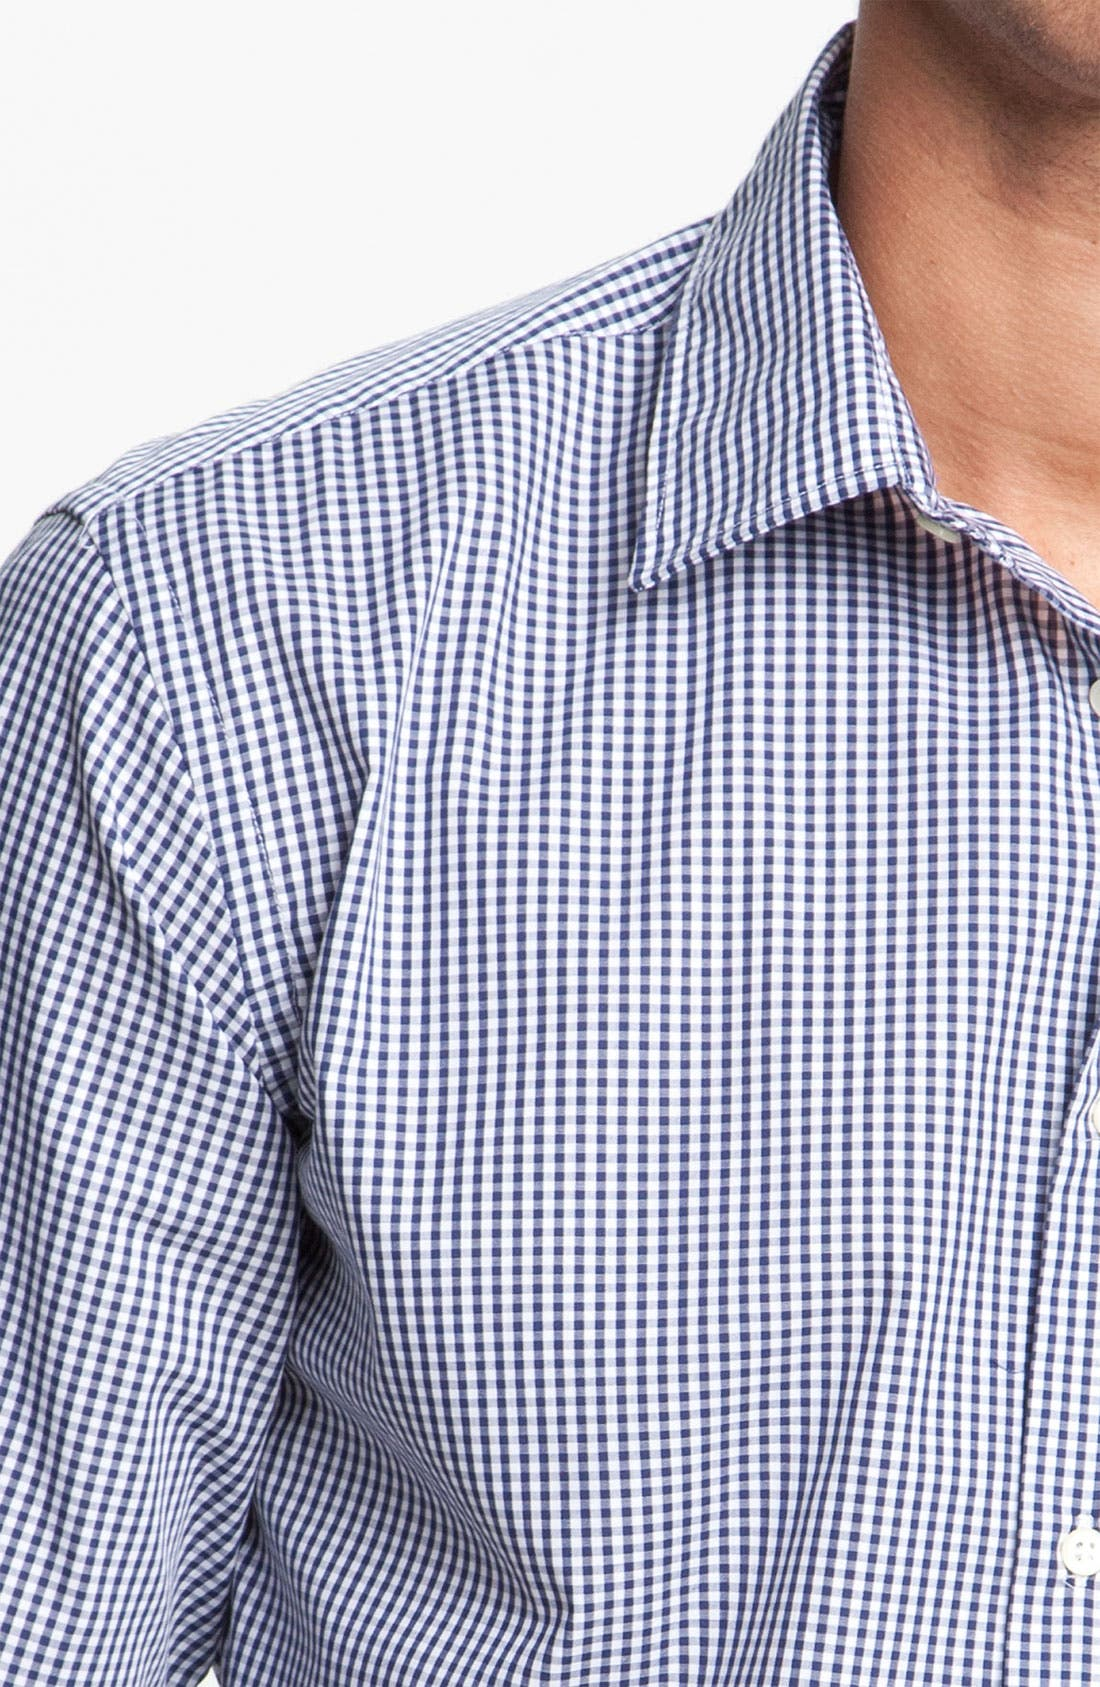 Alternate Image 3  - Mason's Micro Gingham Cotton Shirt